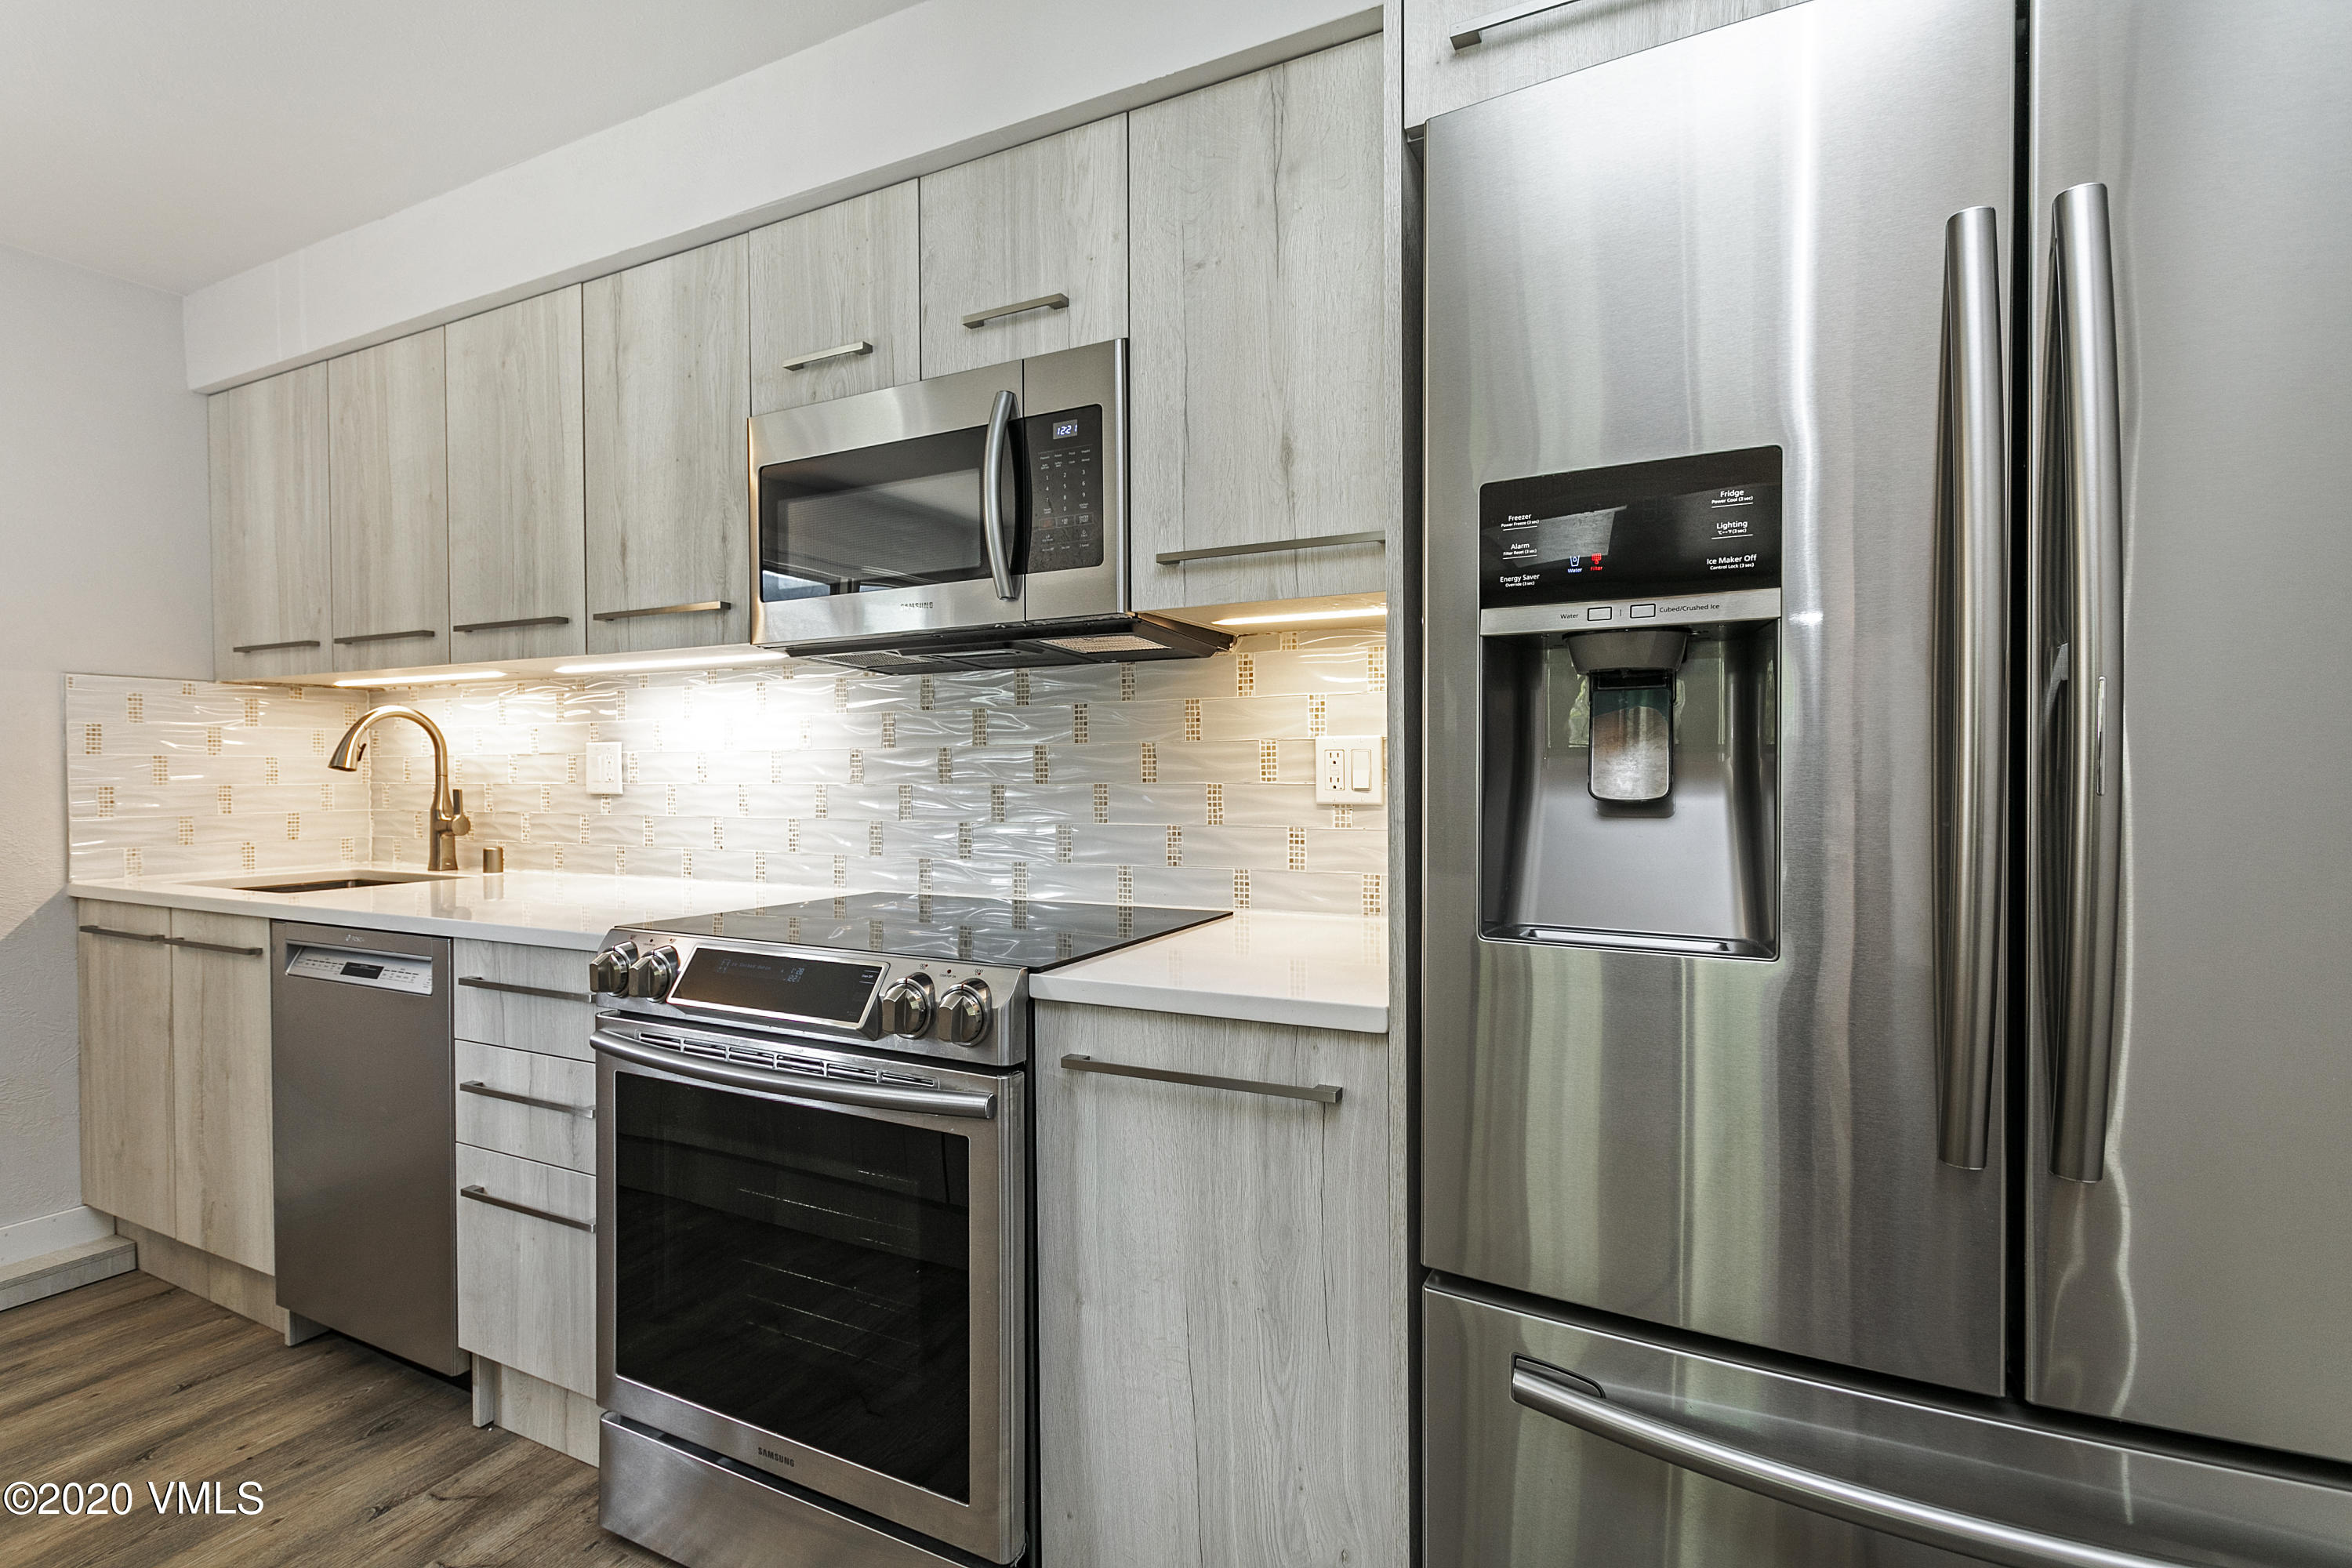 Fully remodeled modern condo, gorgeous floors, beautiful kitchen and bath, extra storage space for gear and only steps to the town shuttle for ski access. This home must be occupied by someone working 30 + hrs a week in Eagle County. Perfect Primary or any investor can buy & rent it long term - Currently getting $2100 a month.  Lease in place until end of ski season.  No Transfer Tax - Exemption possible!